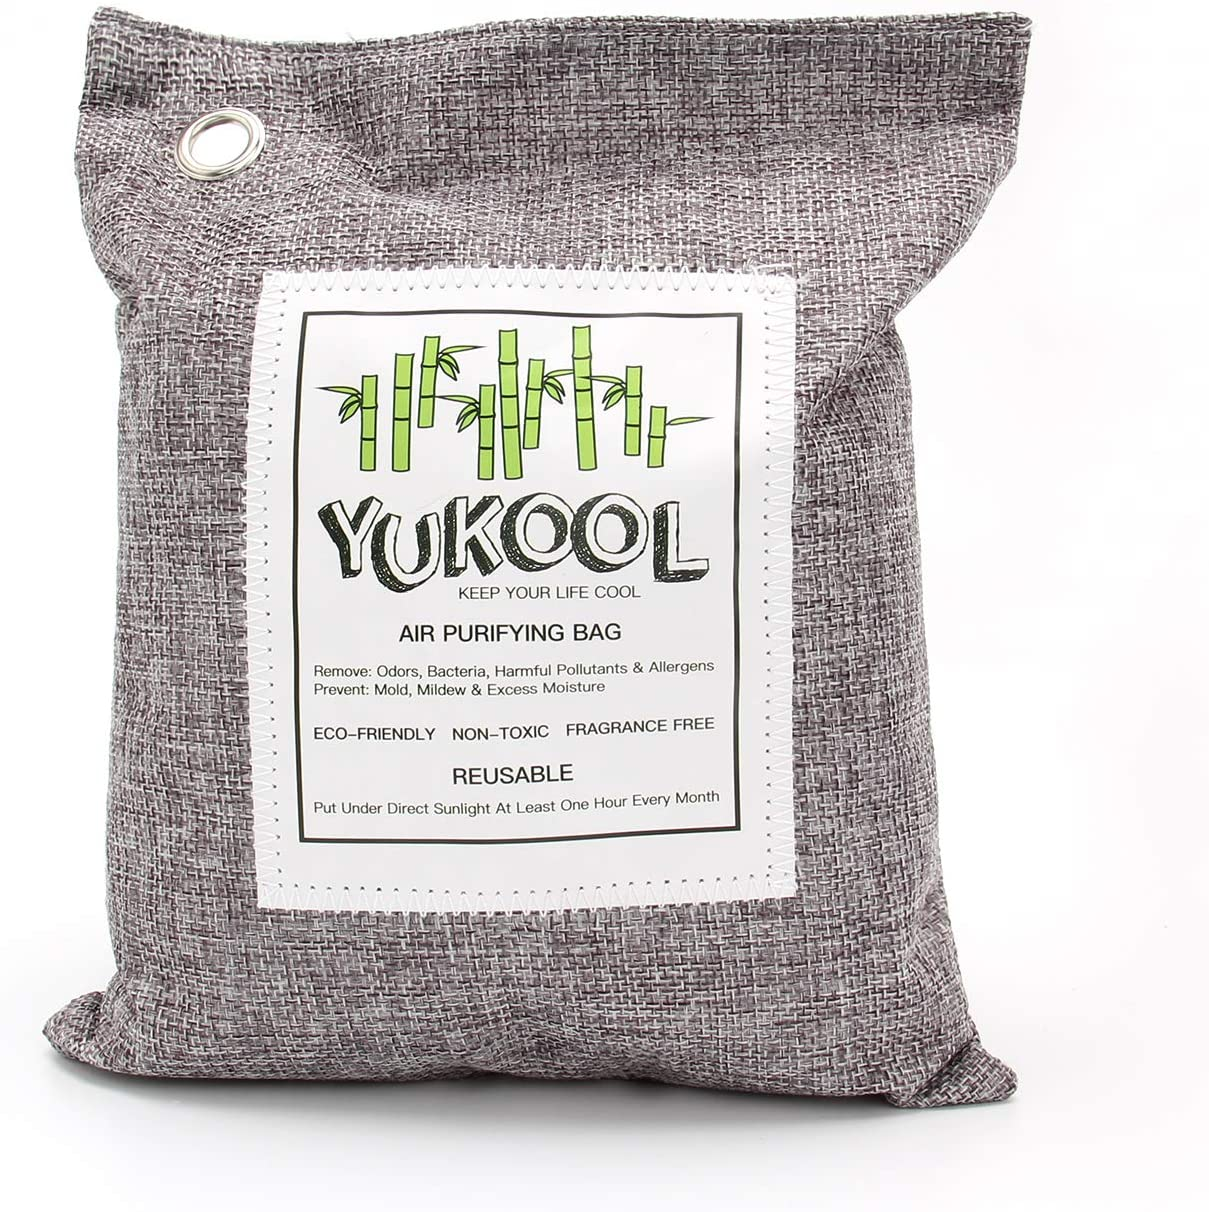 YUKOOL Charcoal Air Purifying Bags, 100% Bamboo Activated Charcoal Air Purifier and Air Freshener, Eco-Friendly, 7pcs, 1 x 500g, 2 x 200g, 4 x 75g (Grey) Grey